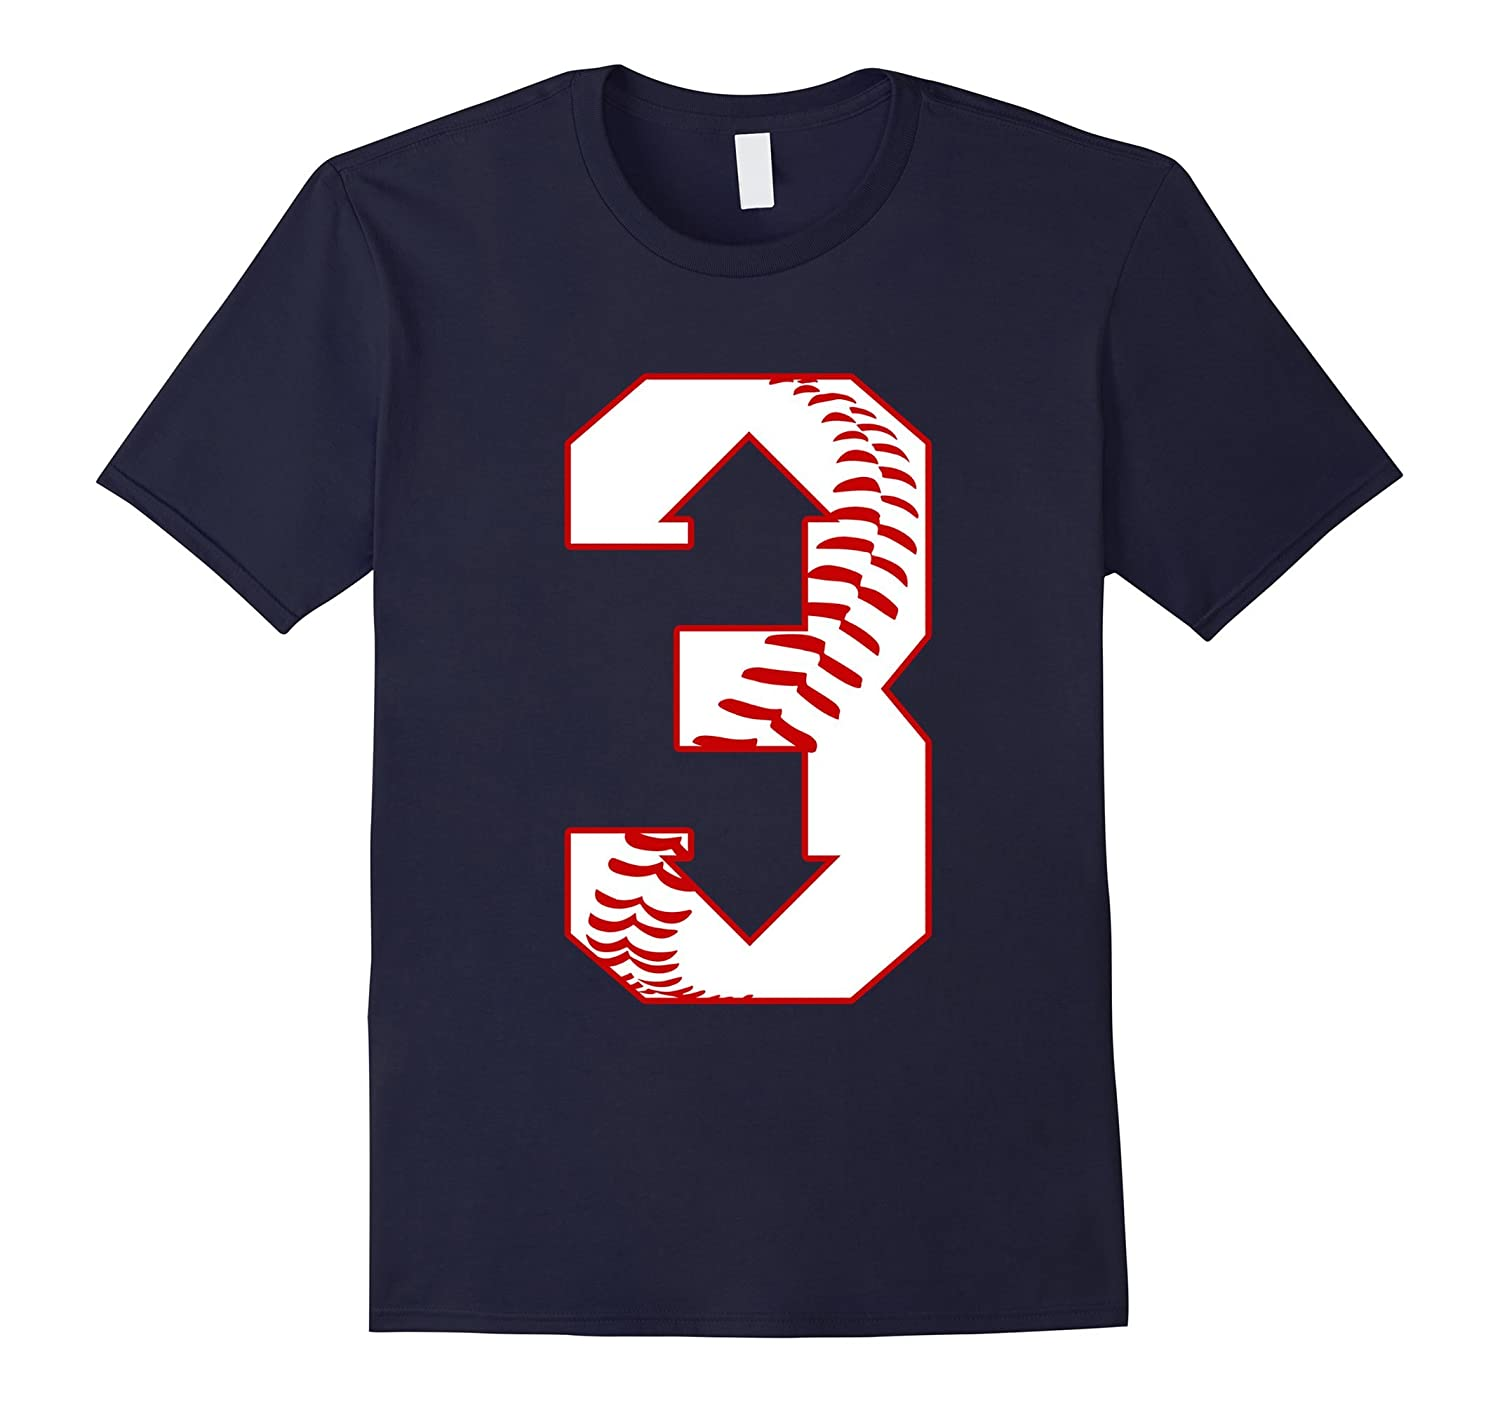 3 Up 3 Down Baseball Shirt & Funny Baseball Shirt Gift-BN